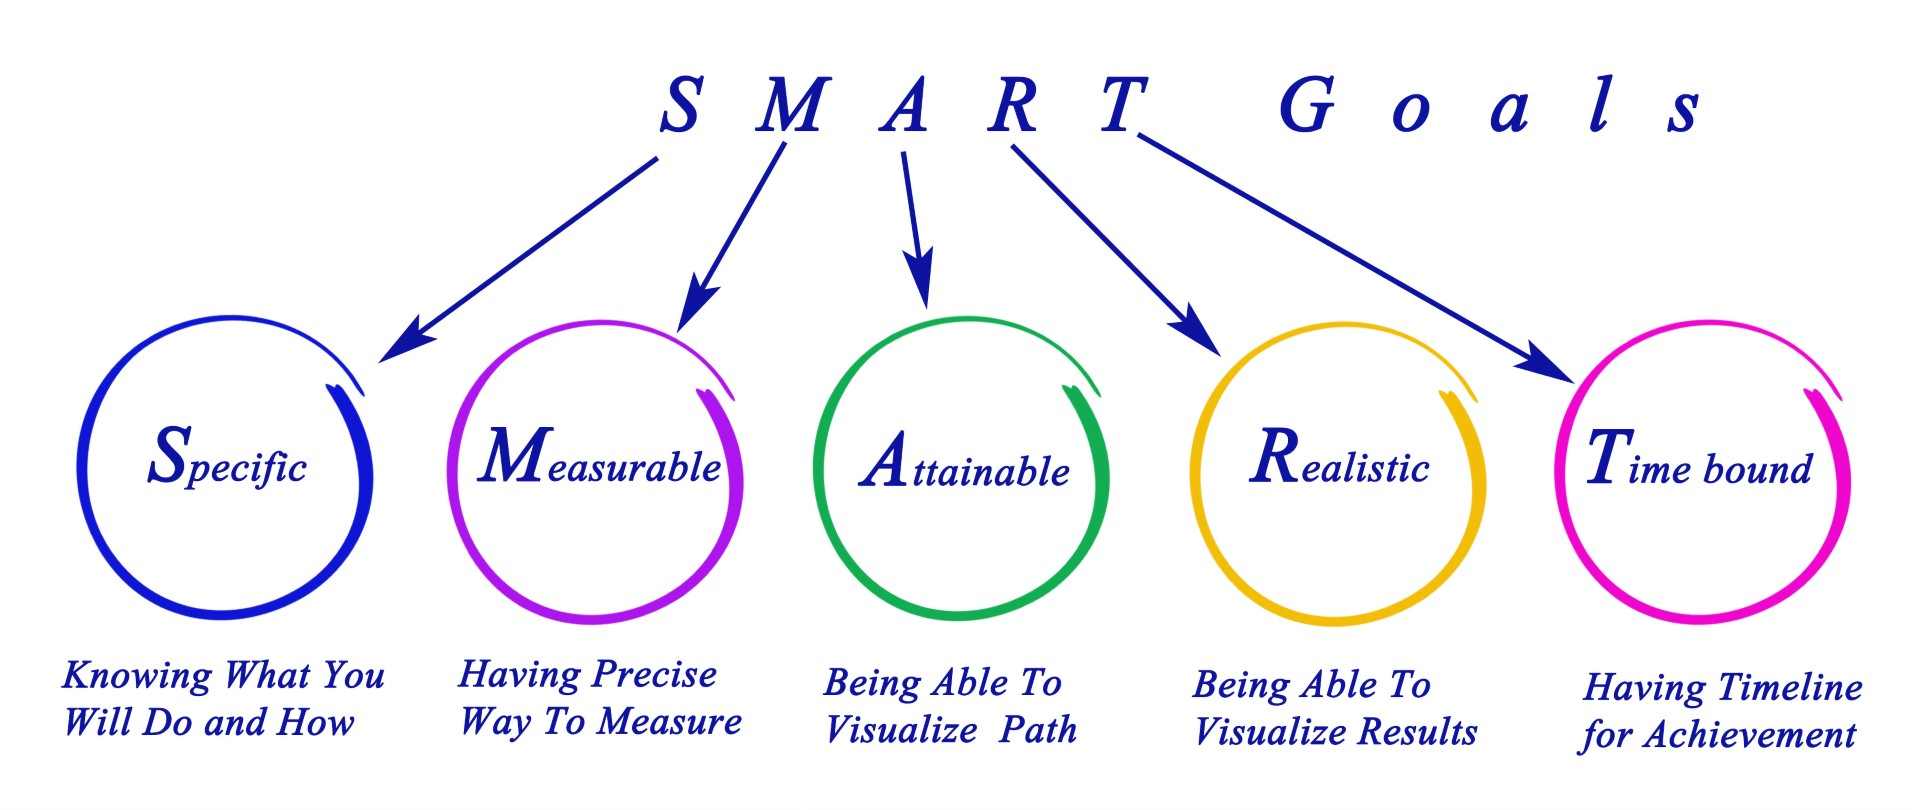 make a new years resolution for smarter goals this year - Make a New Year's Resolution for SMARTER Goals This Year